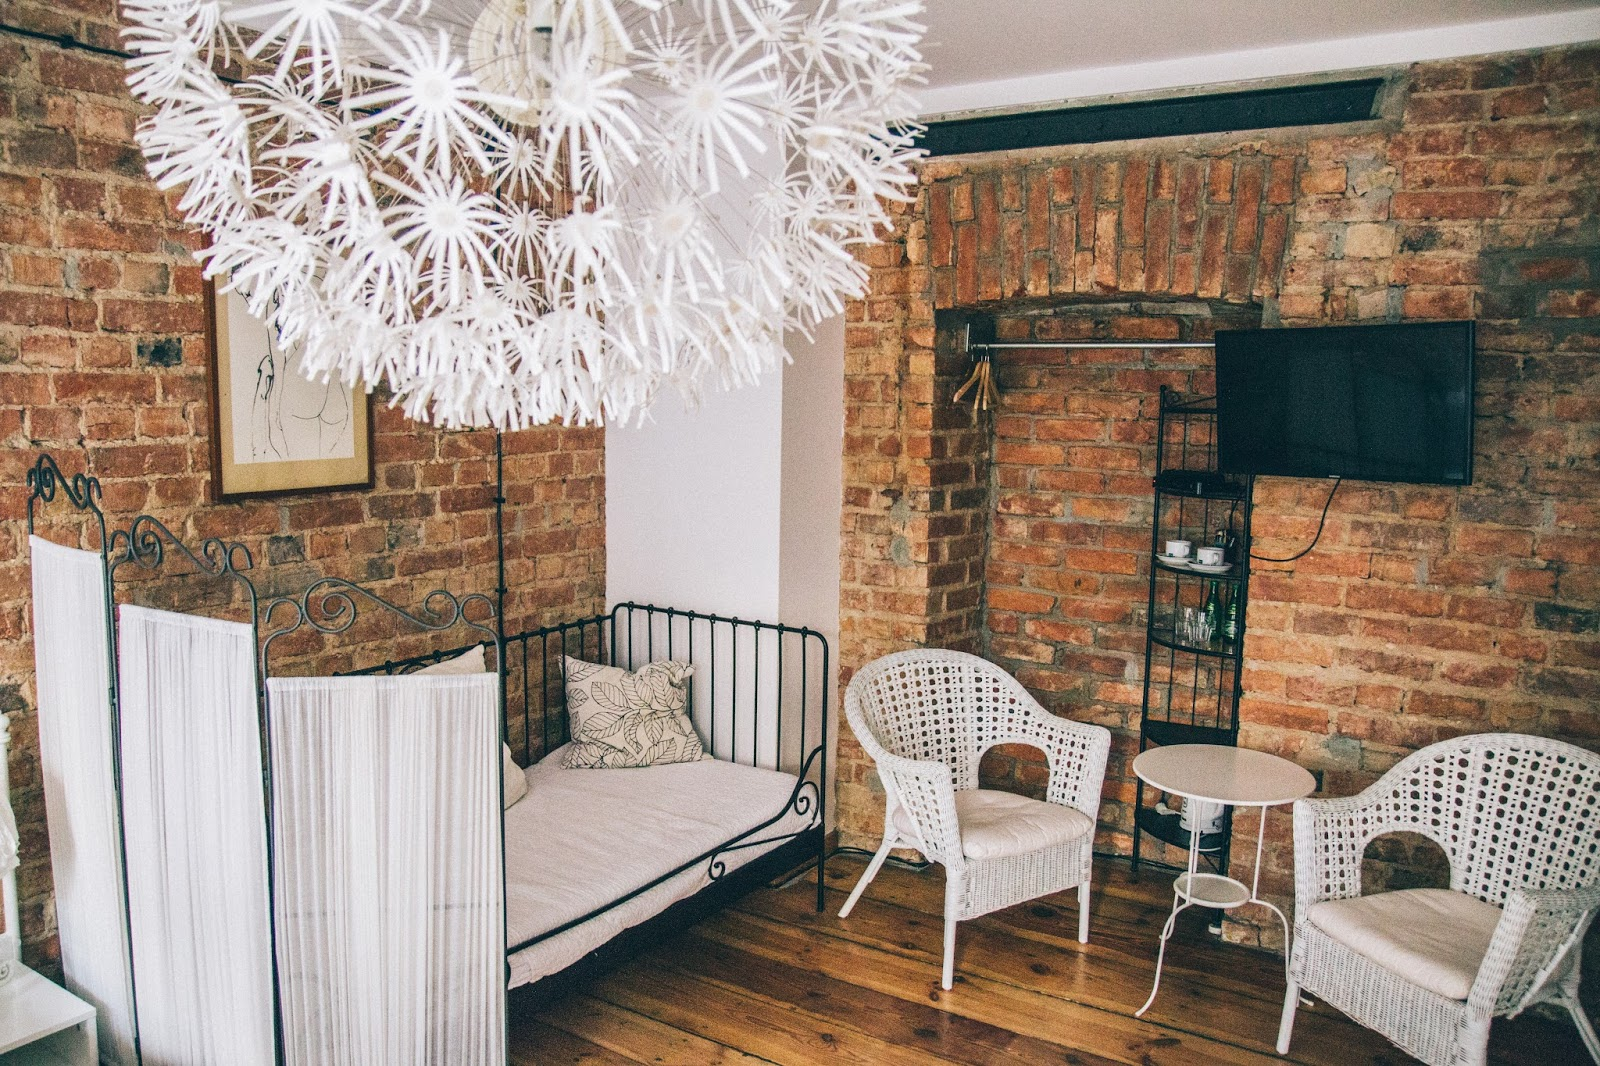 STAYING AT THE CUTEST BOUTIQUE HOTEL IN WARSAW: STALOWA 52 ARTHOTEL